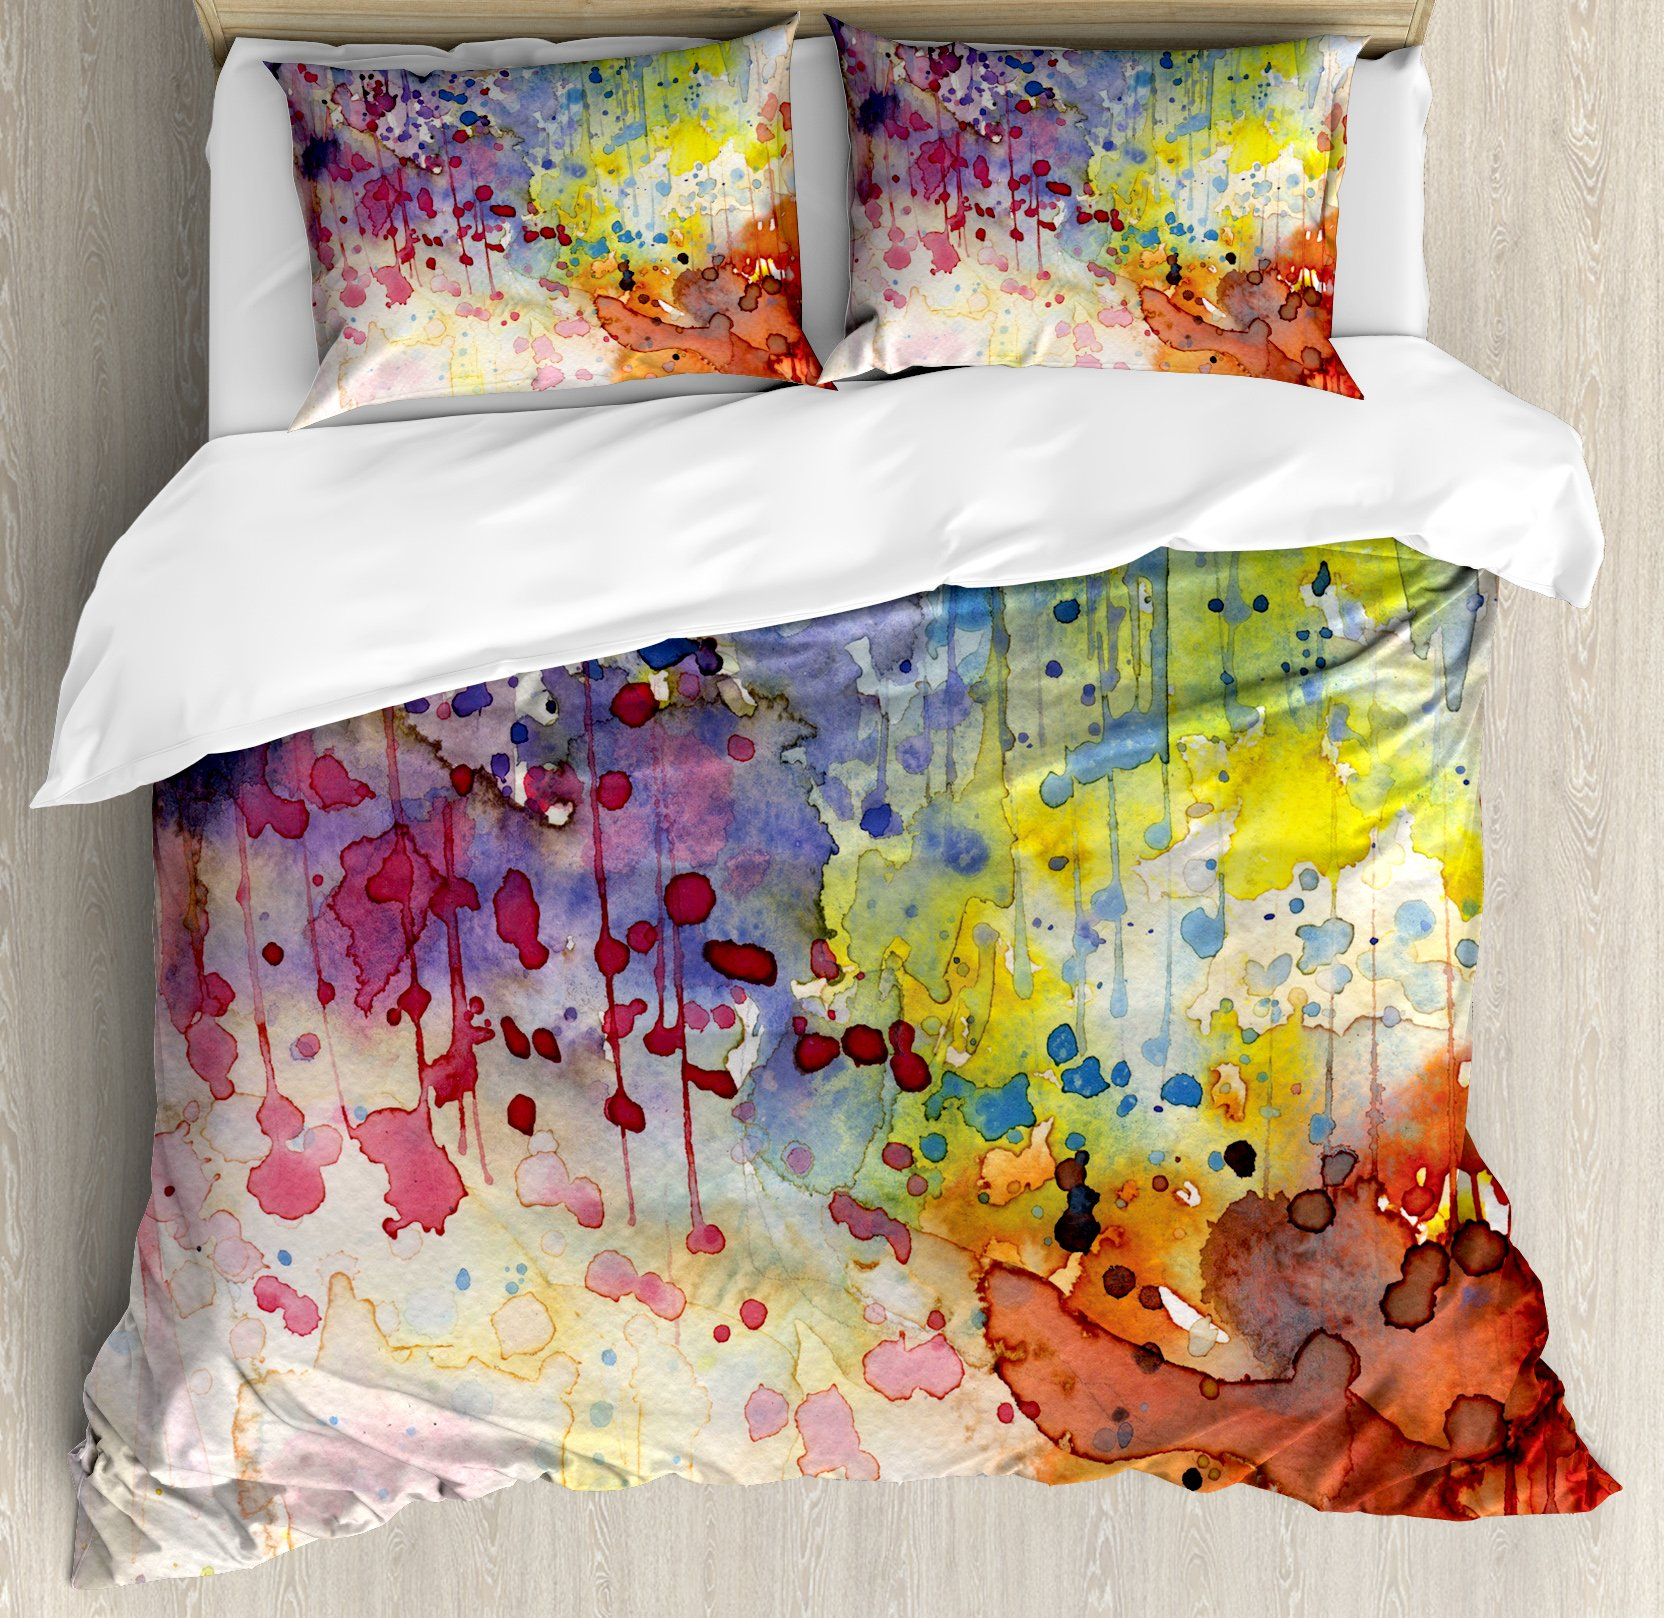 Abstract Duvet Cover Set King Size by Ambesonne, Grunge Style Dirty Look with Colorful Watercolor Spots Liquid Splashes Artistic, Decorative 3 Piece Bedding Set with 2 Pillow Shams, Multicolor